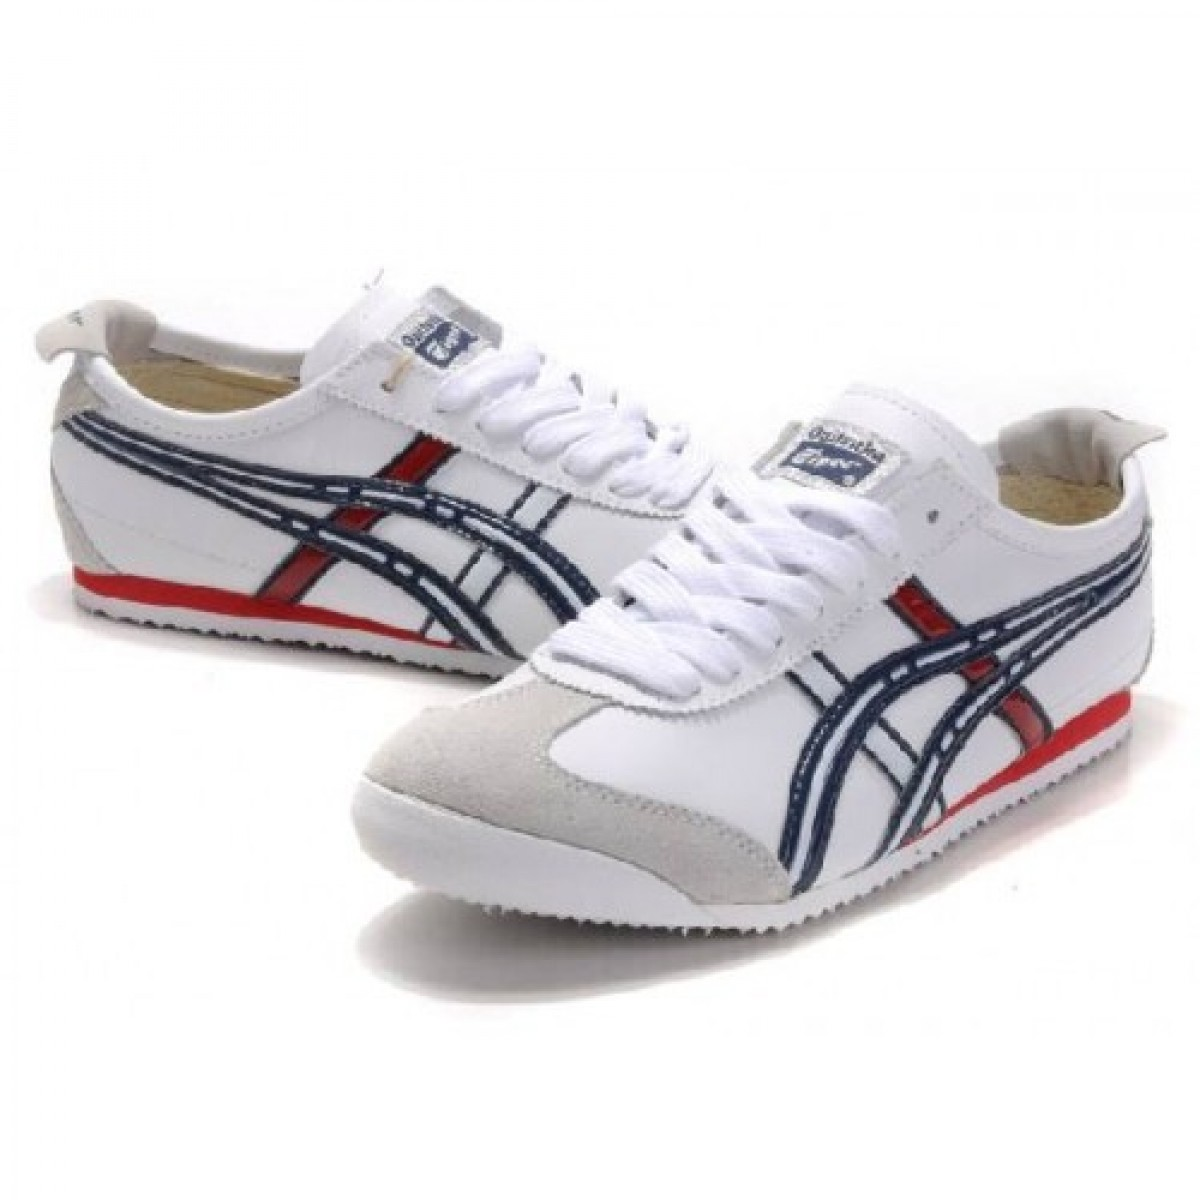 FB8207 Soldes Asics Onitsuka Tiger Mexico 66 Blanc Bleu Rouge 05639947 Pas Cher